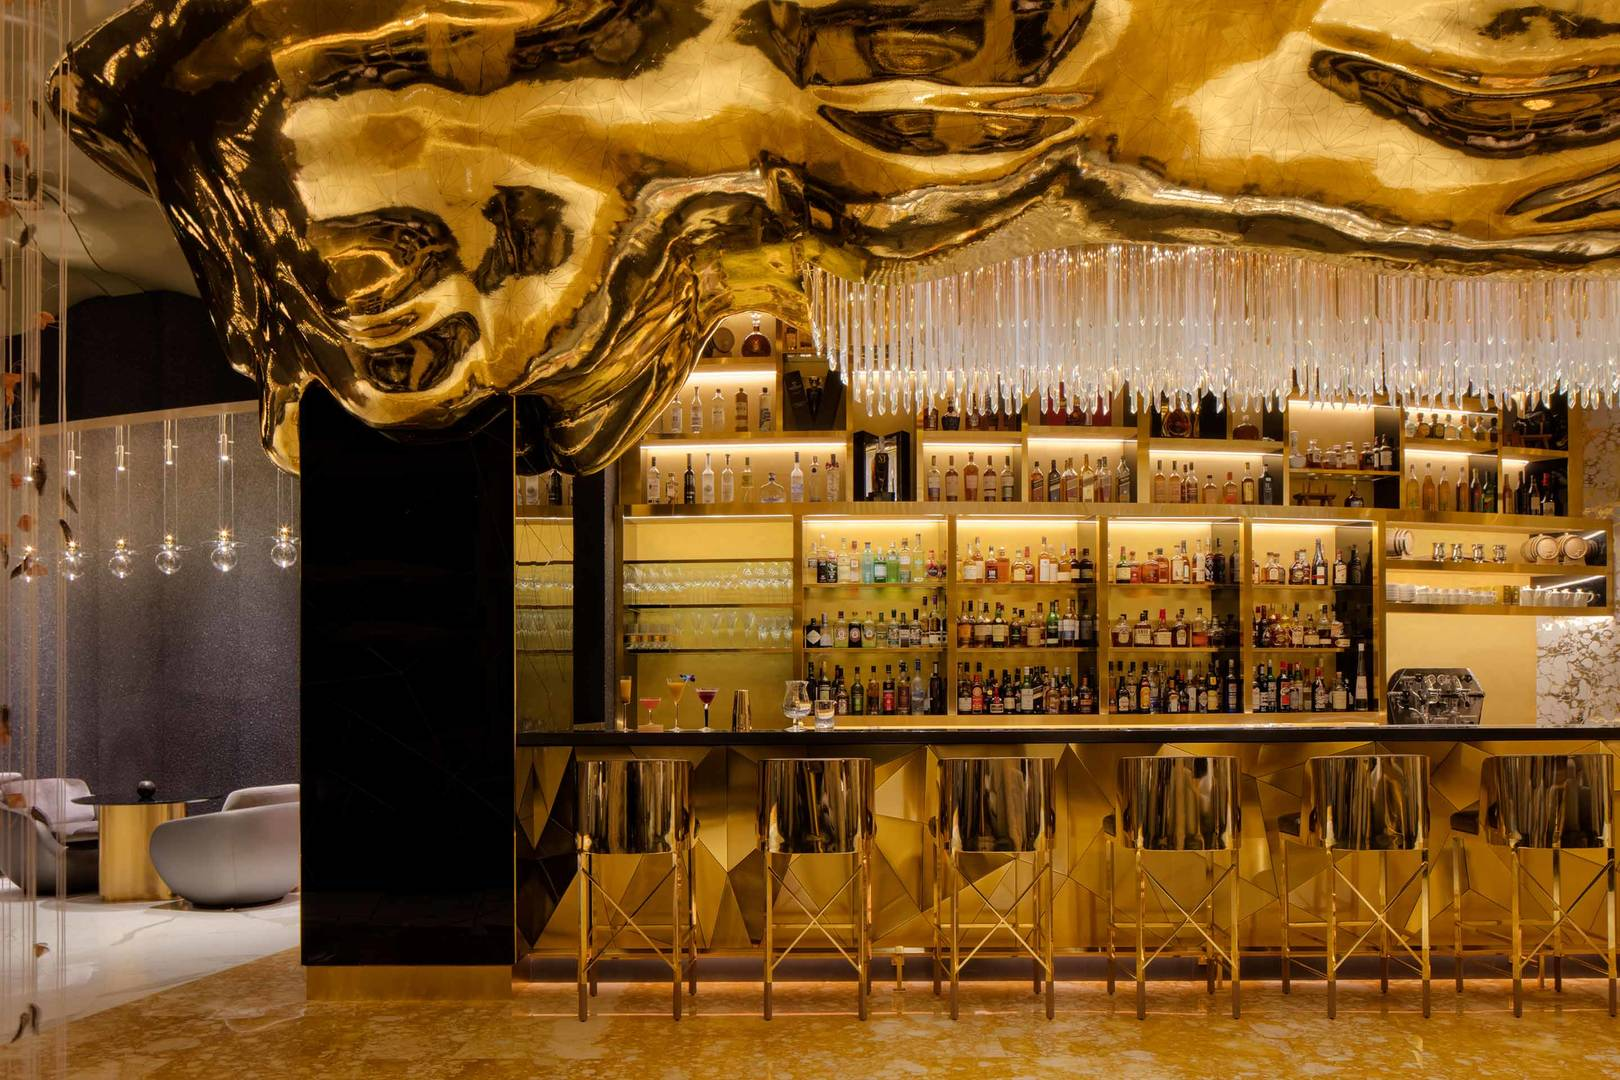 Burj Al Arab Gold on 27 bar area